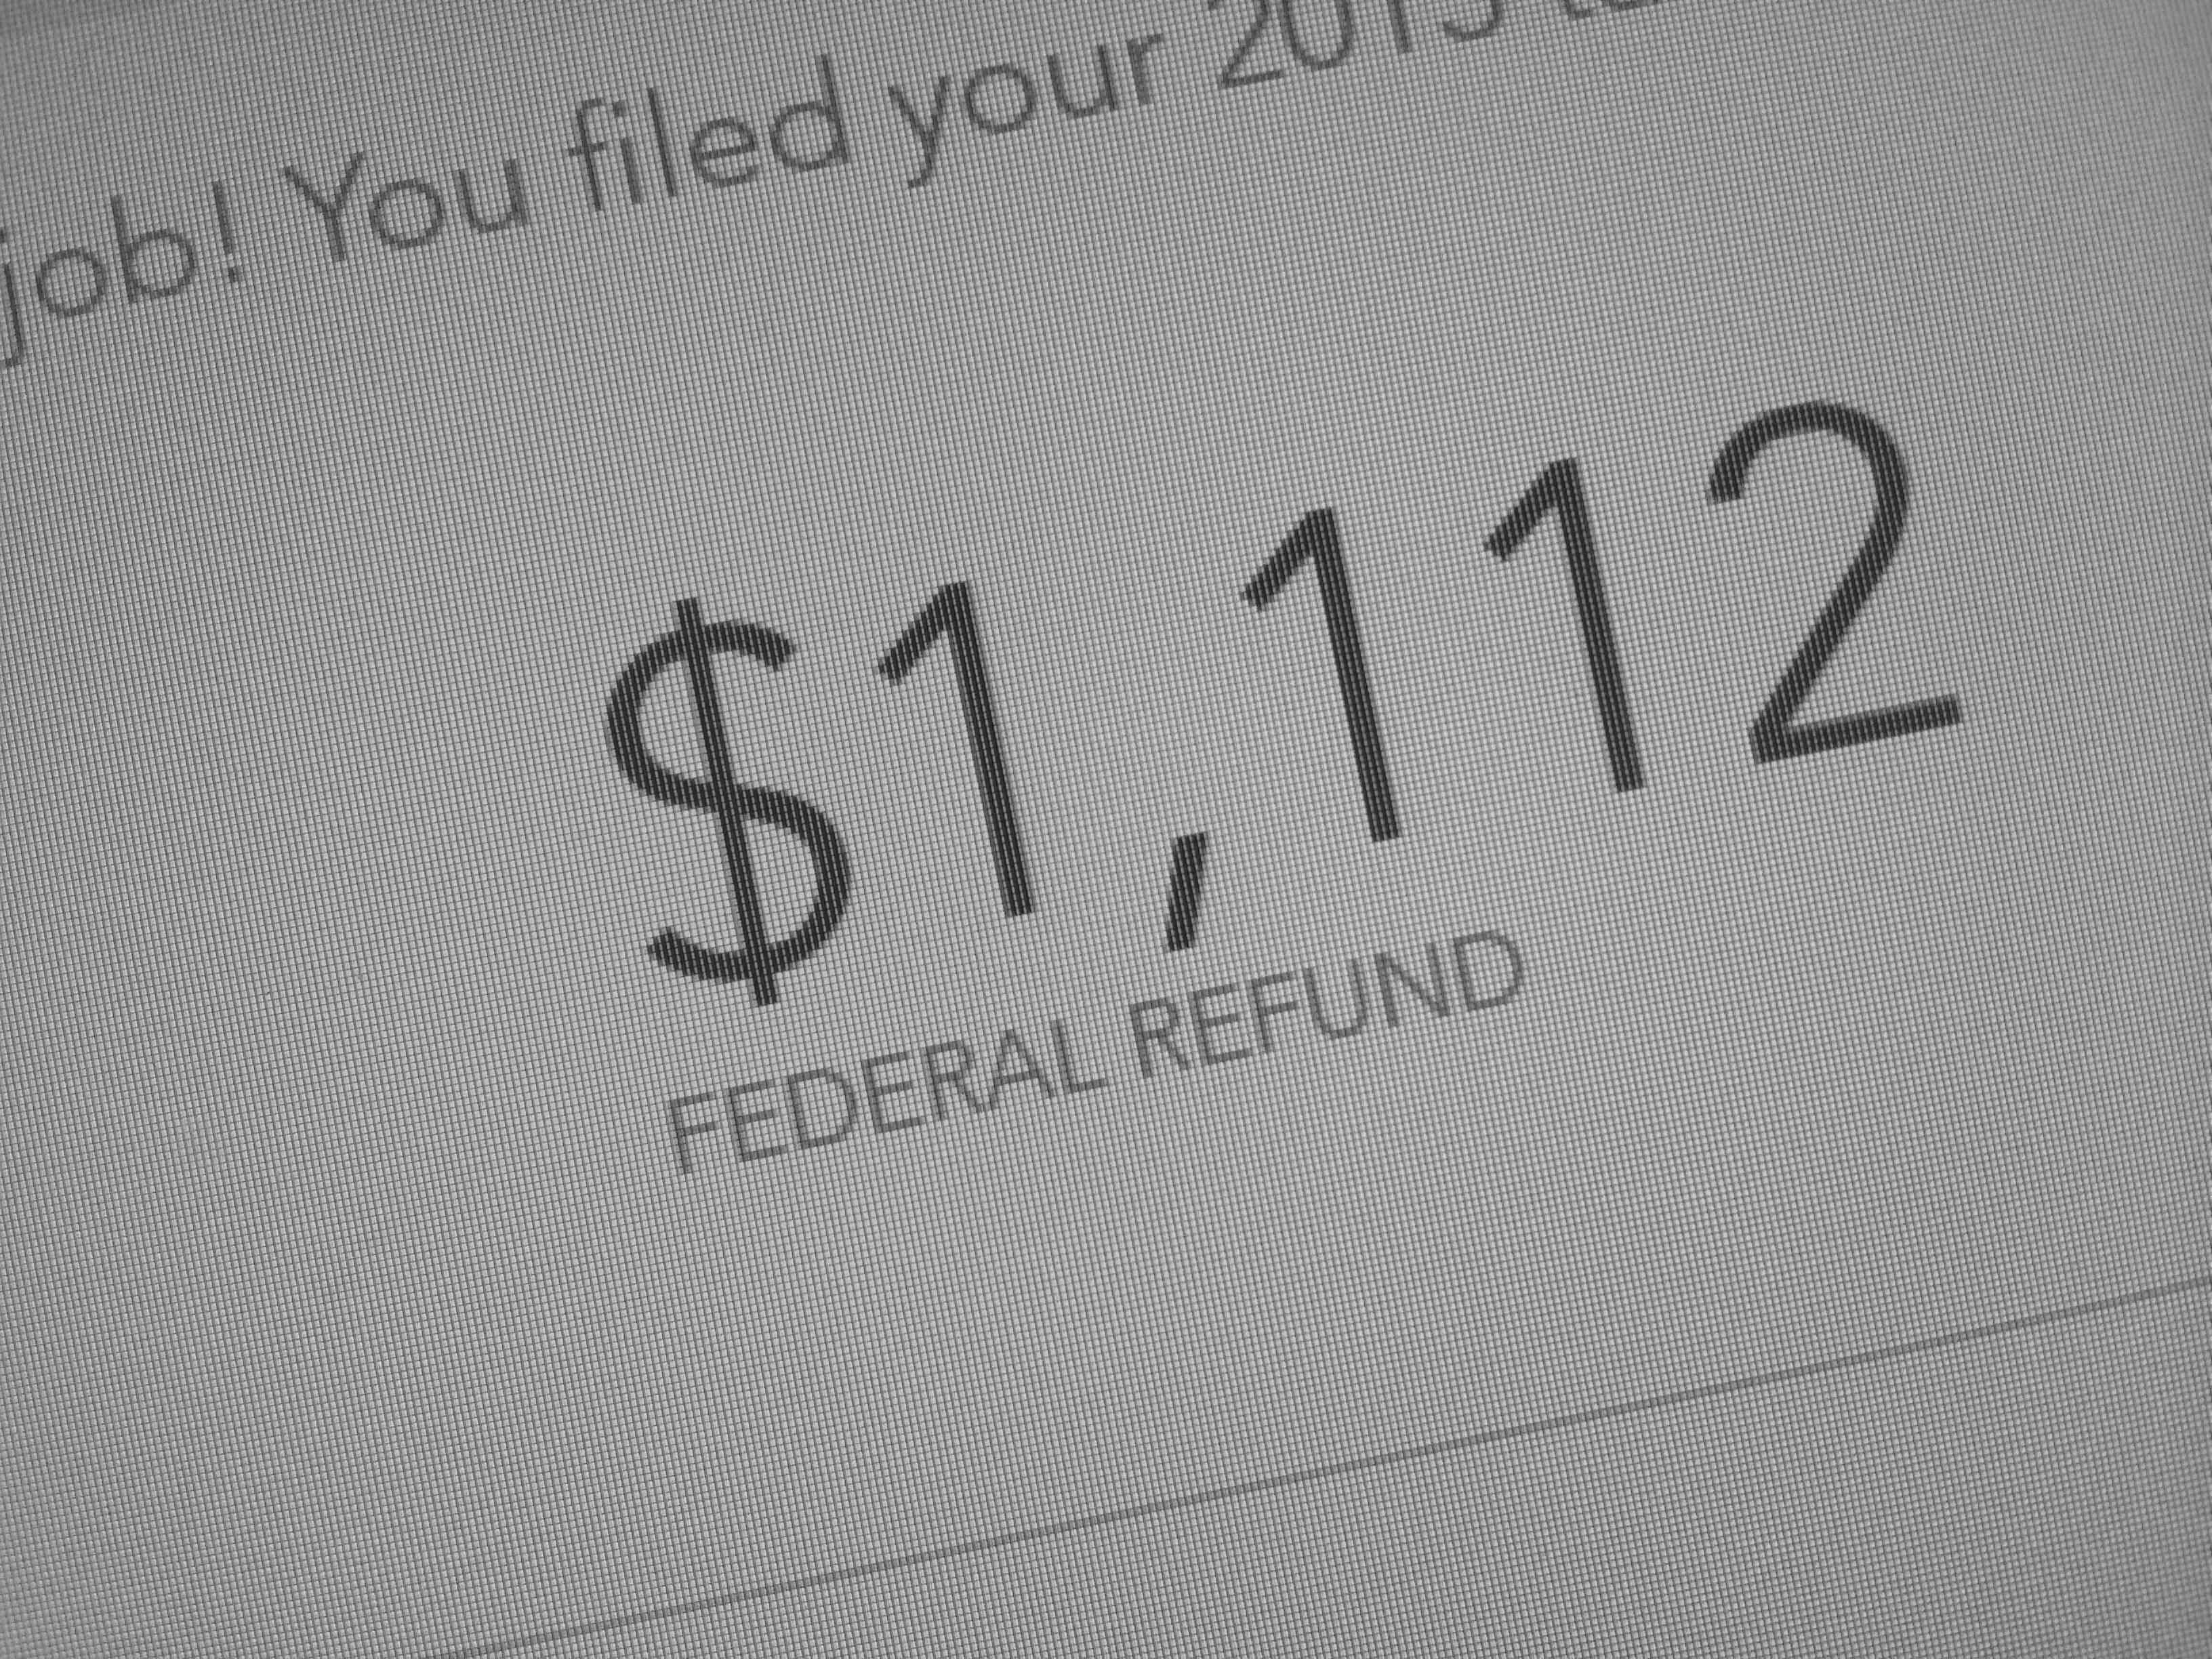 Trace Your Tax Refund Status Online With IrsGov